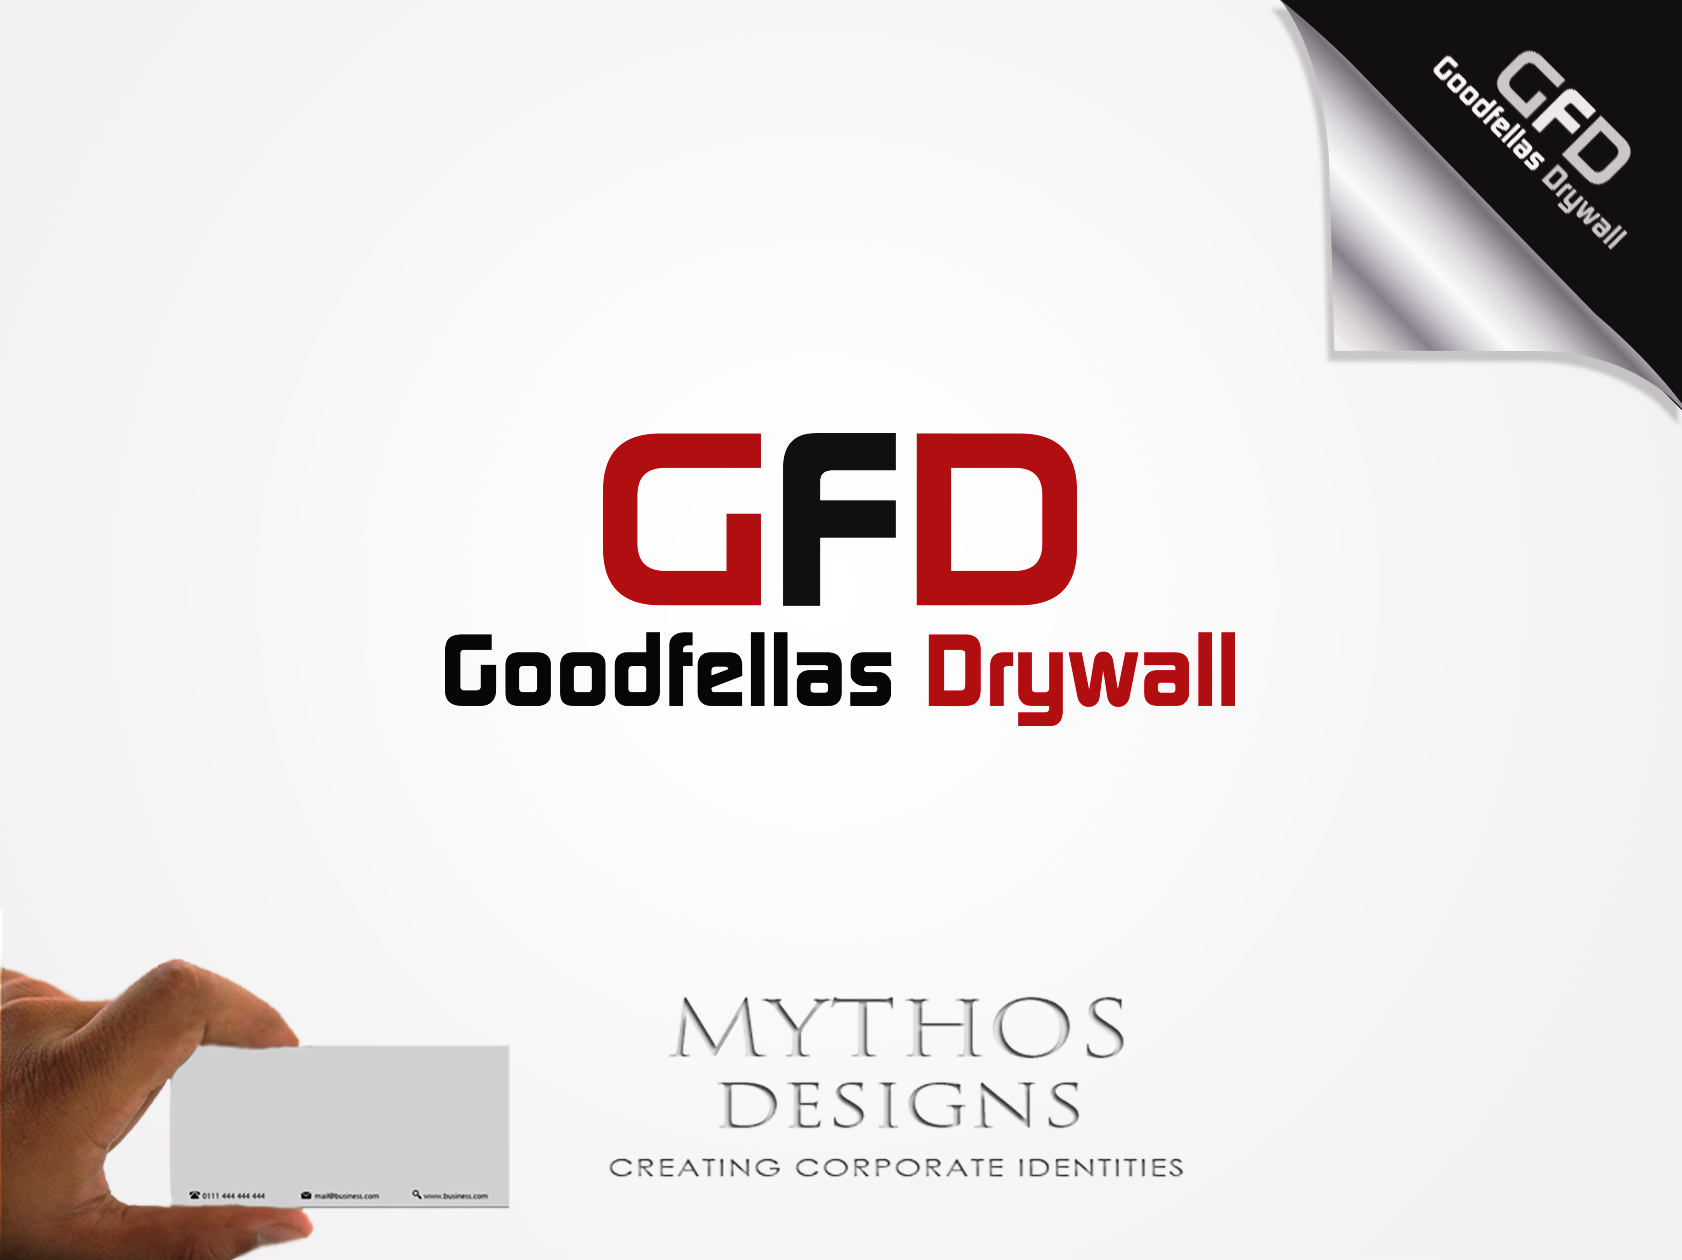 Logo Design by Mythos Designs - Entry No. 83 in the Logo Design Contest Creative Logo Design for Goodfellas Drywall.